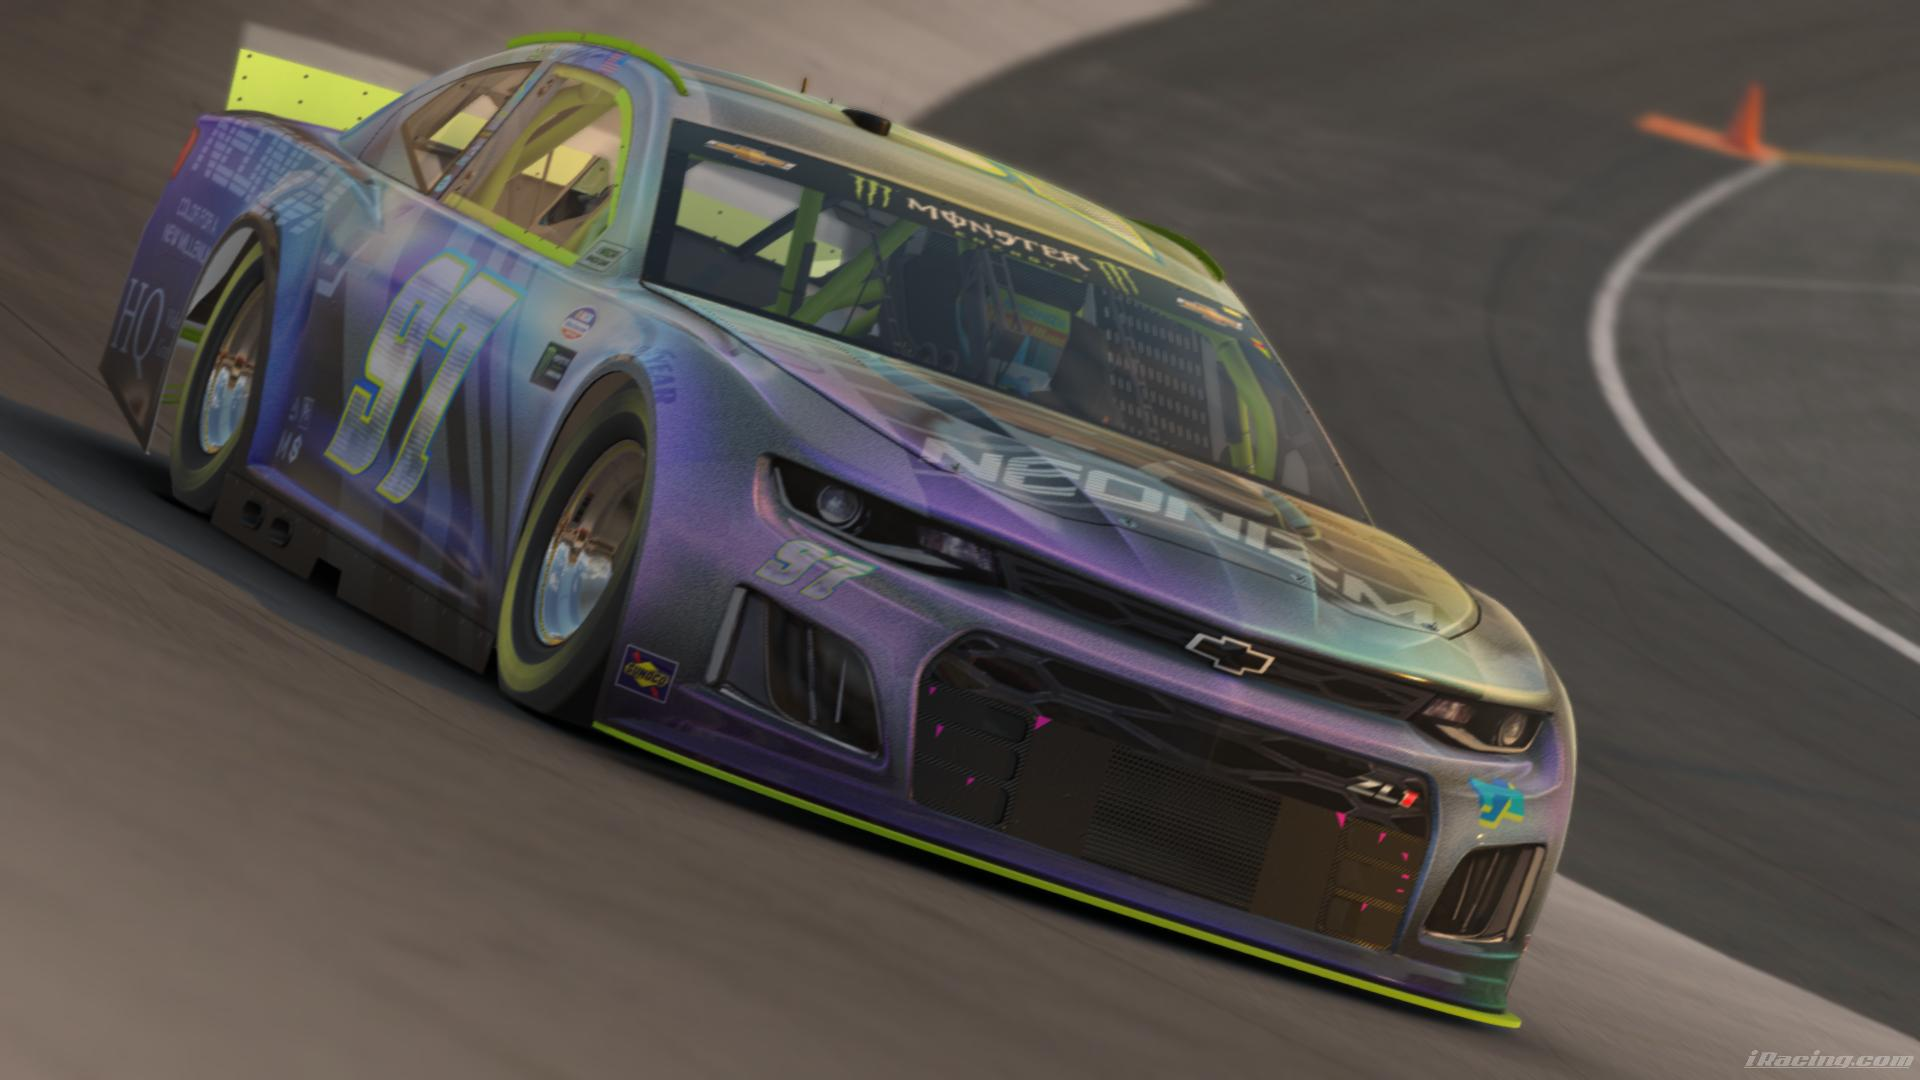 Preview of Neonizm VHS Throwback ZL1 by Jesse Abraham